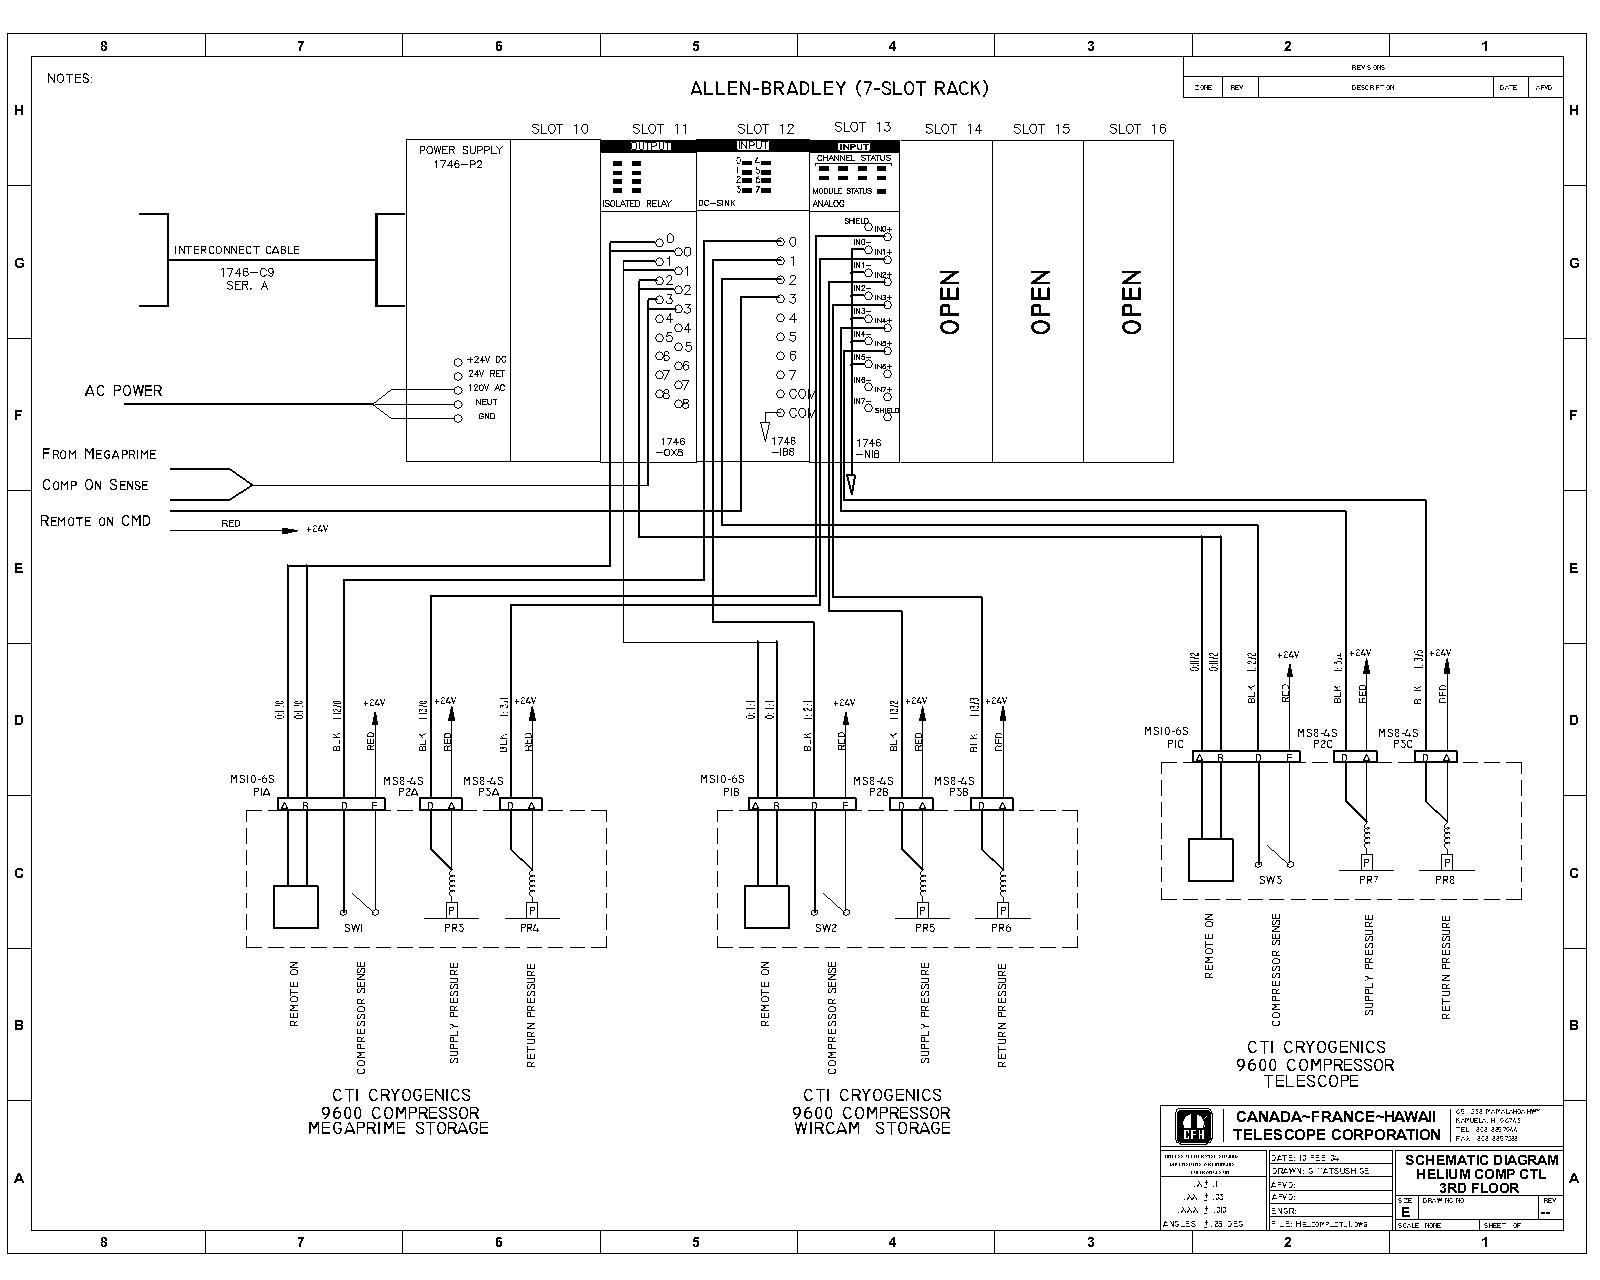 channel master wiring diagram wiring diagram plc omron  with images  diagram  drawing software  wiring diagram plc omron  with images